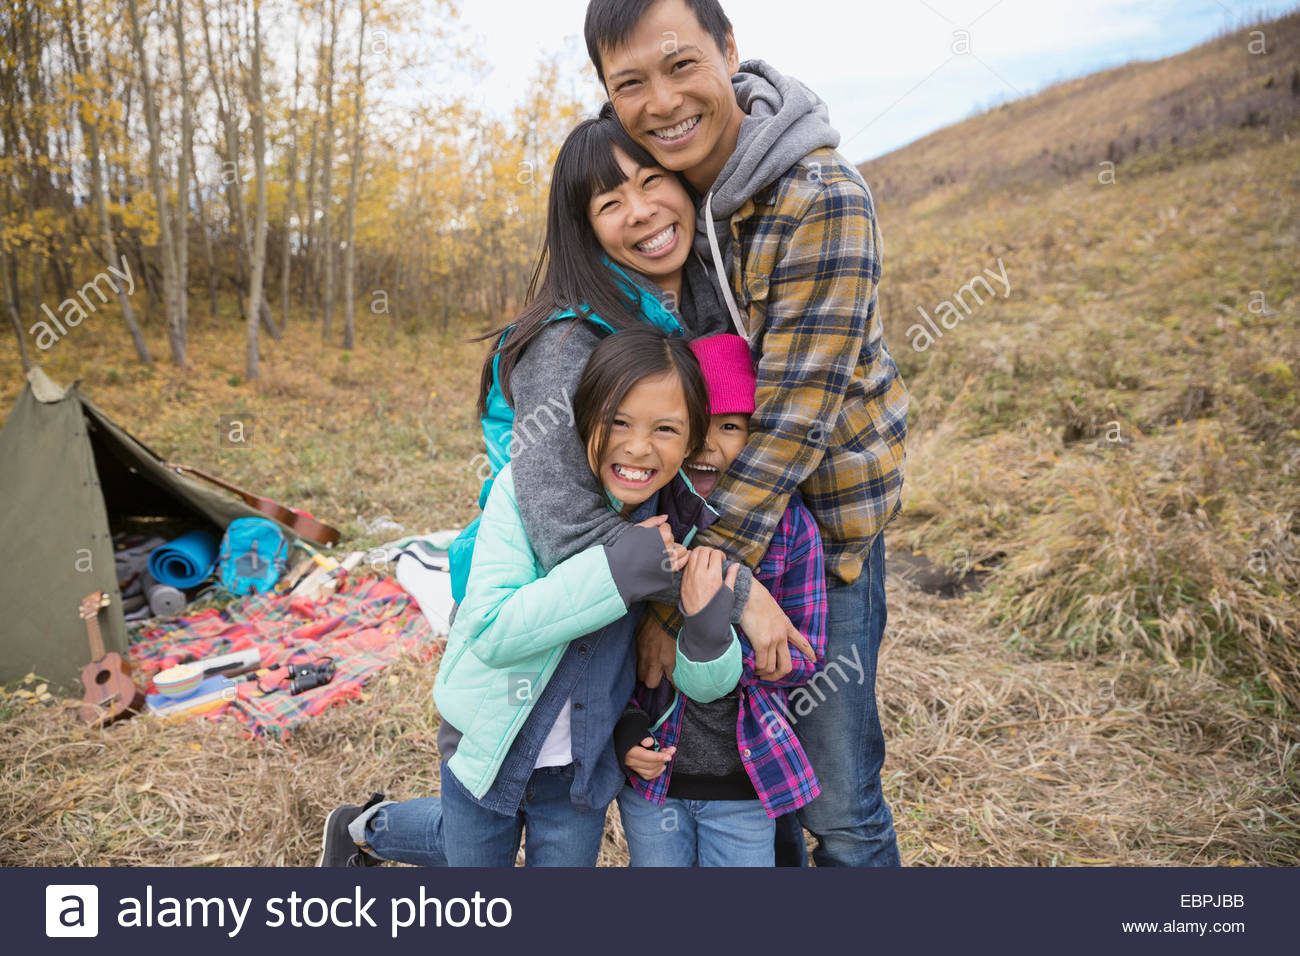 Portrait of family hugging at campsite - Stock Image